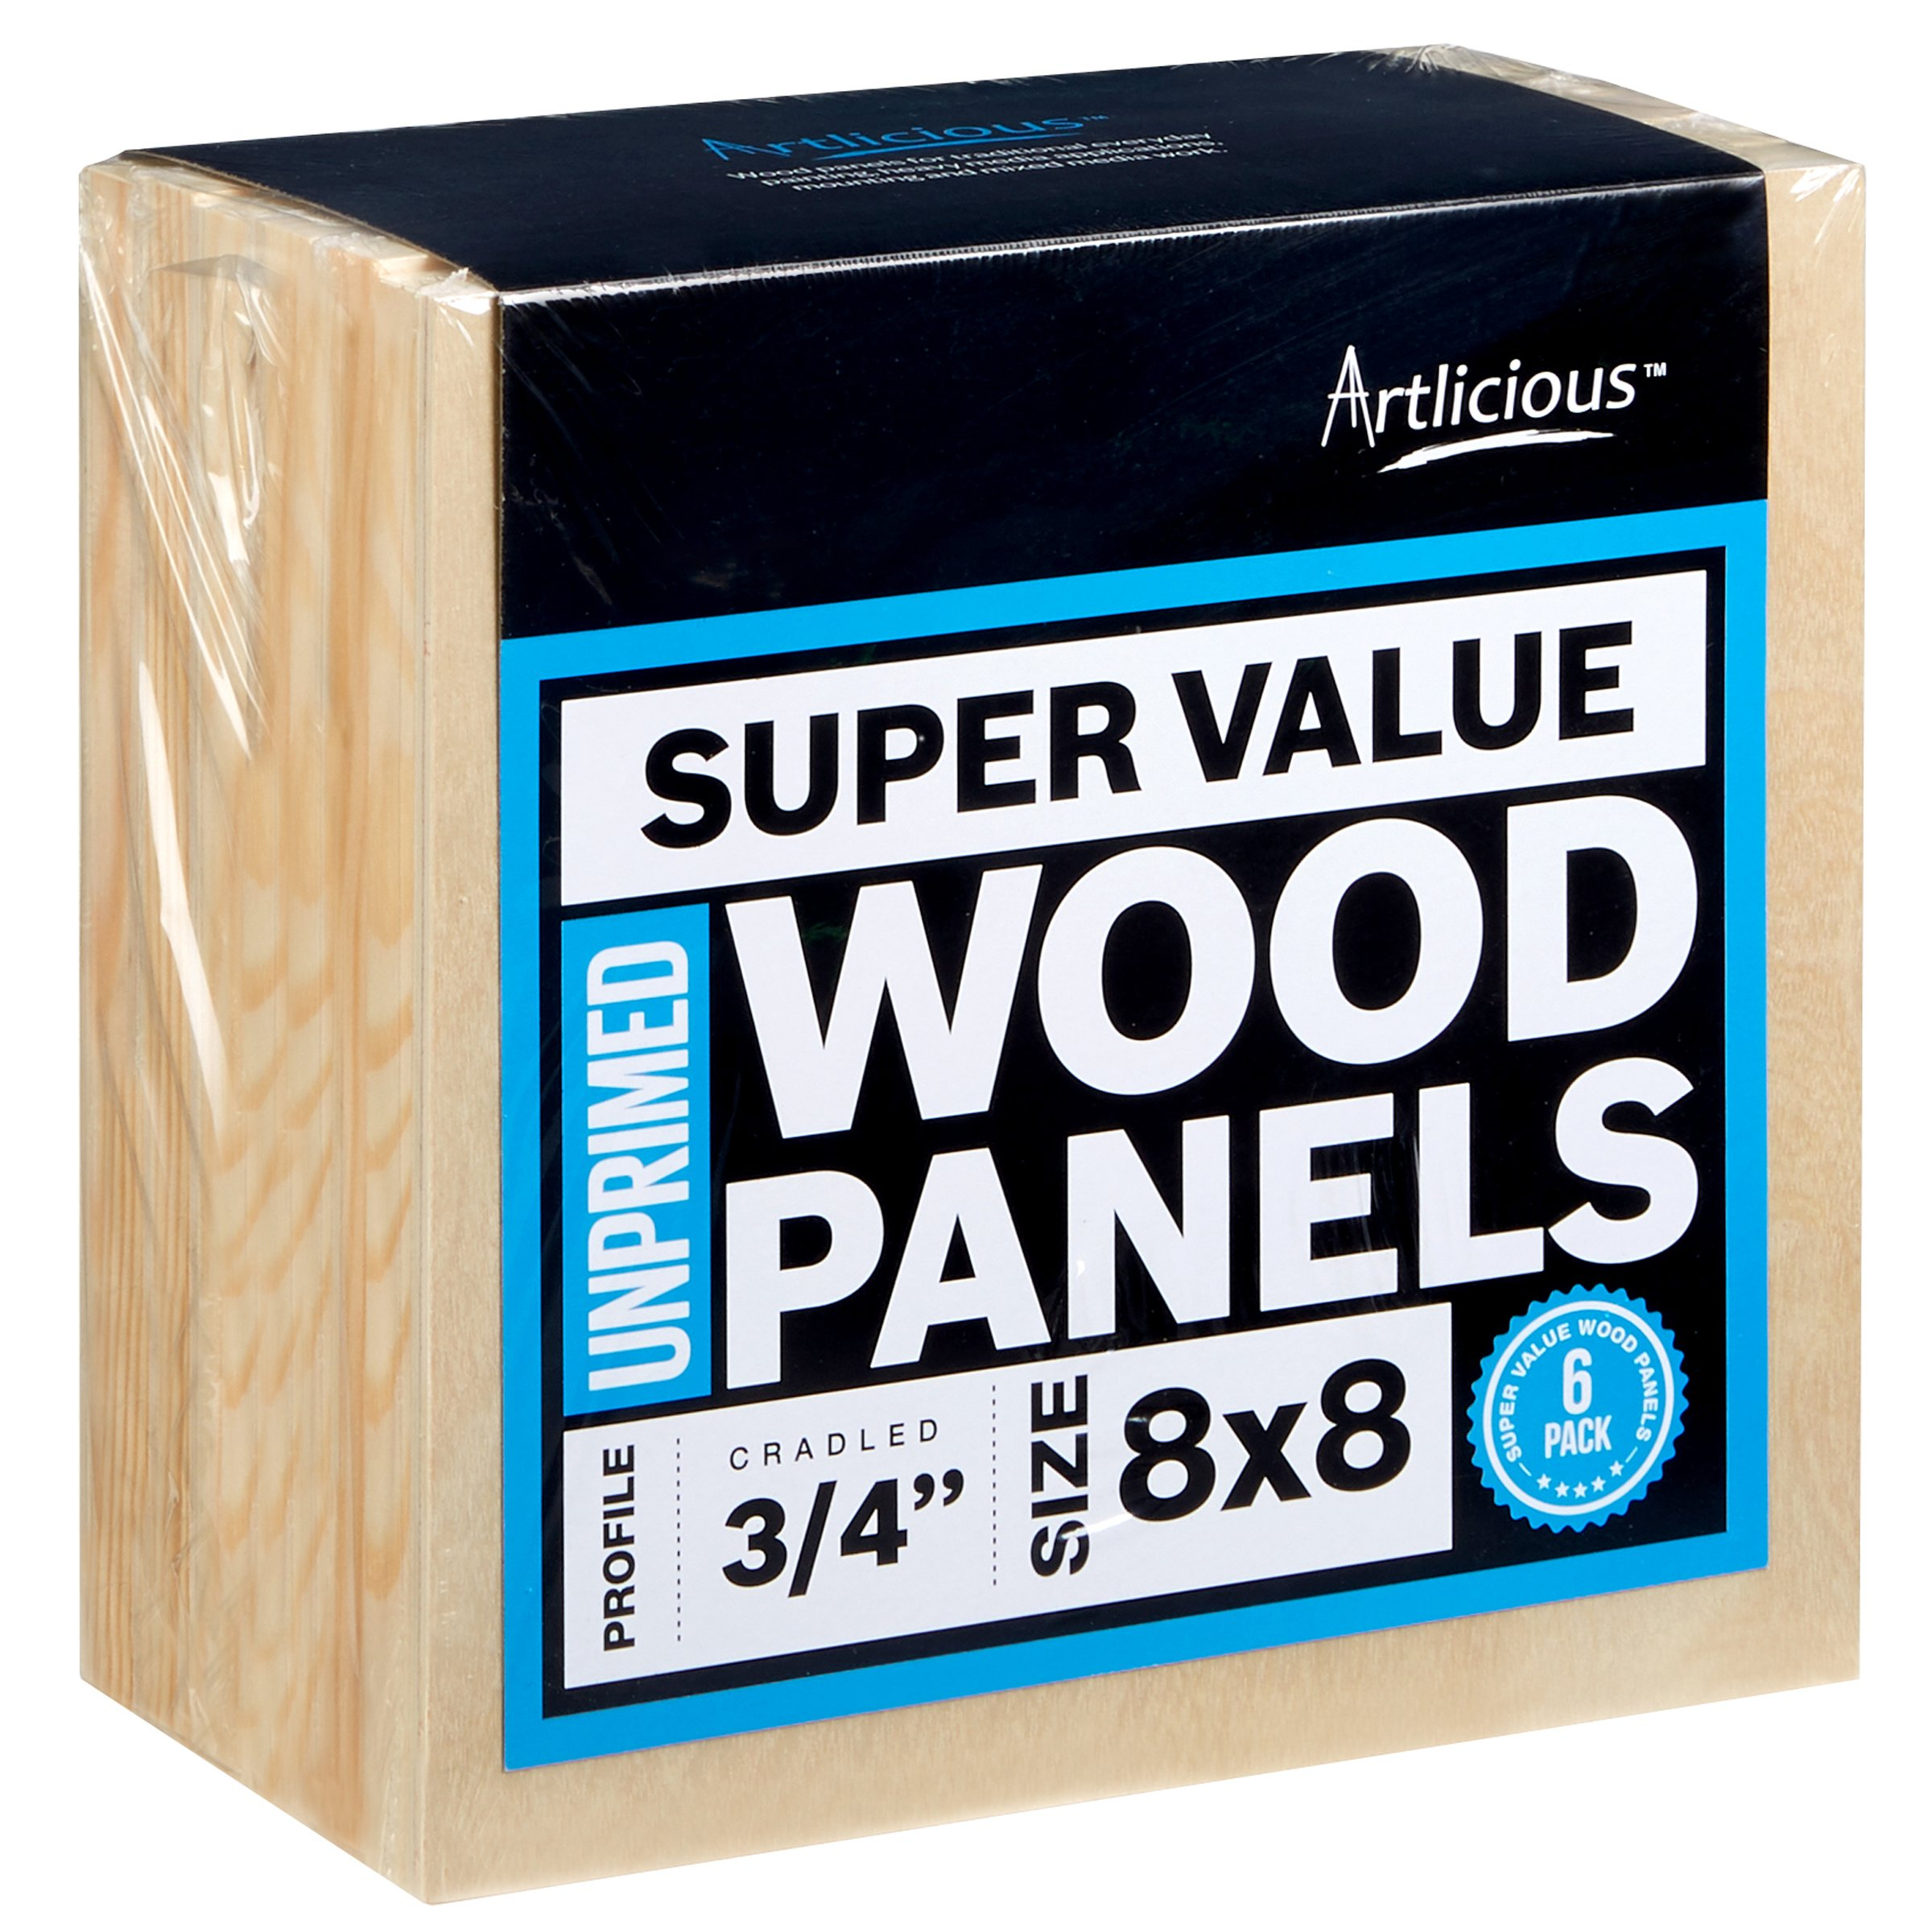 Artlicious - 6 Super Value Wood Panel Boards - Great Alternative to Canvas Panels, Stretched Canvas & Canvas Rolls (8x8, Standard Profile) by Artlicious